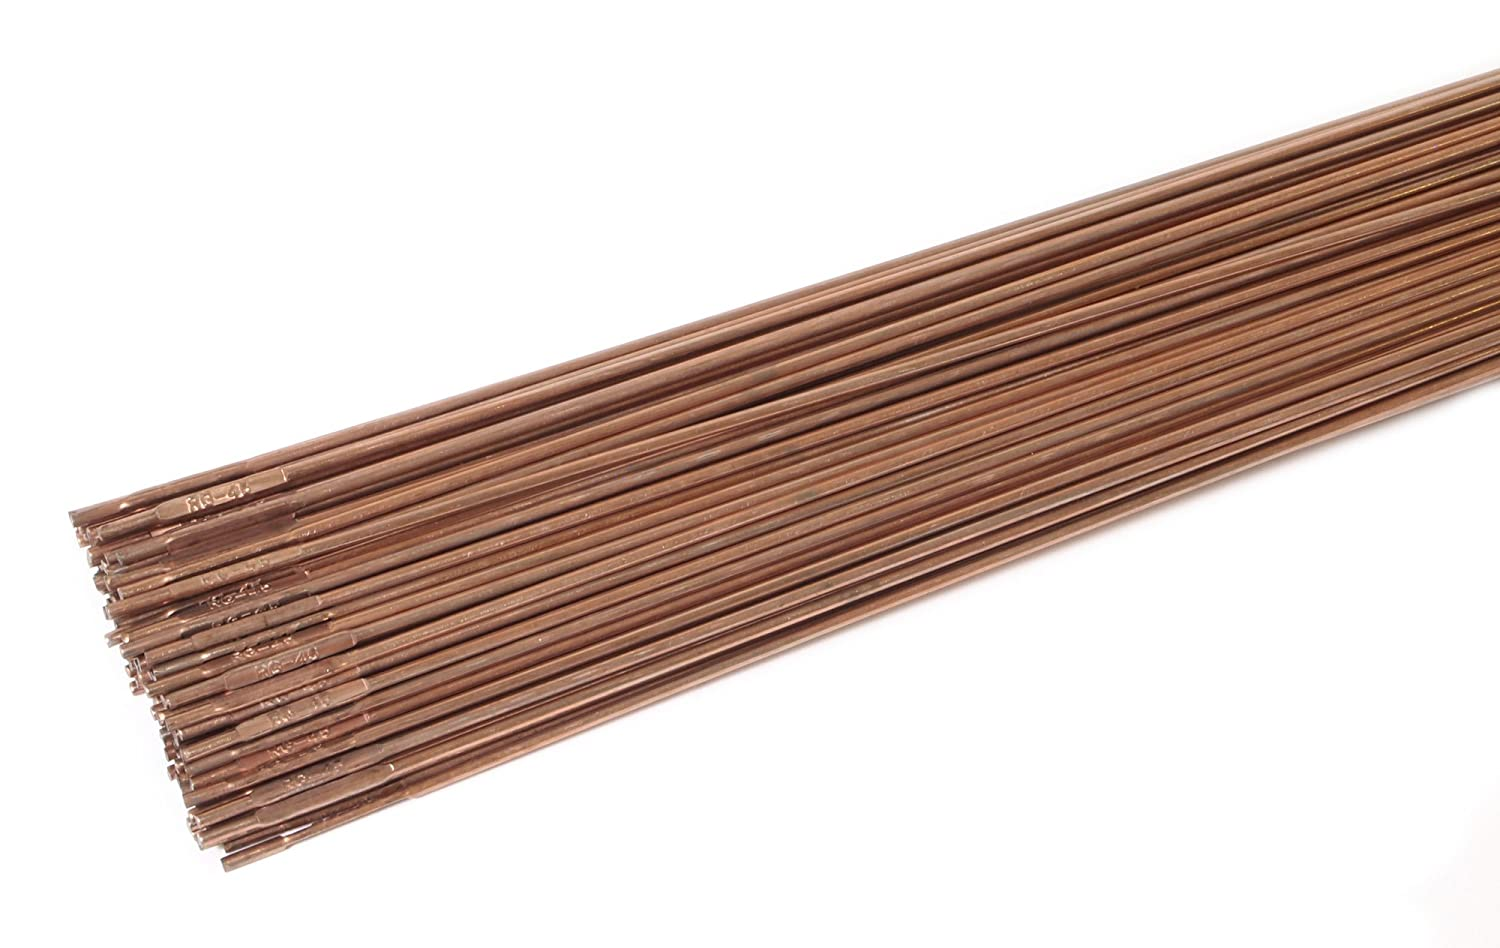 Forney 42330 Copper Coated Brazing Rod, 1/16-Inch-by-36-Inch, 5 ...